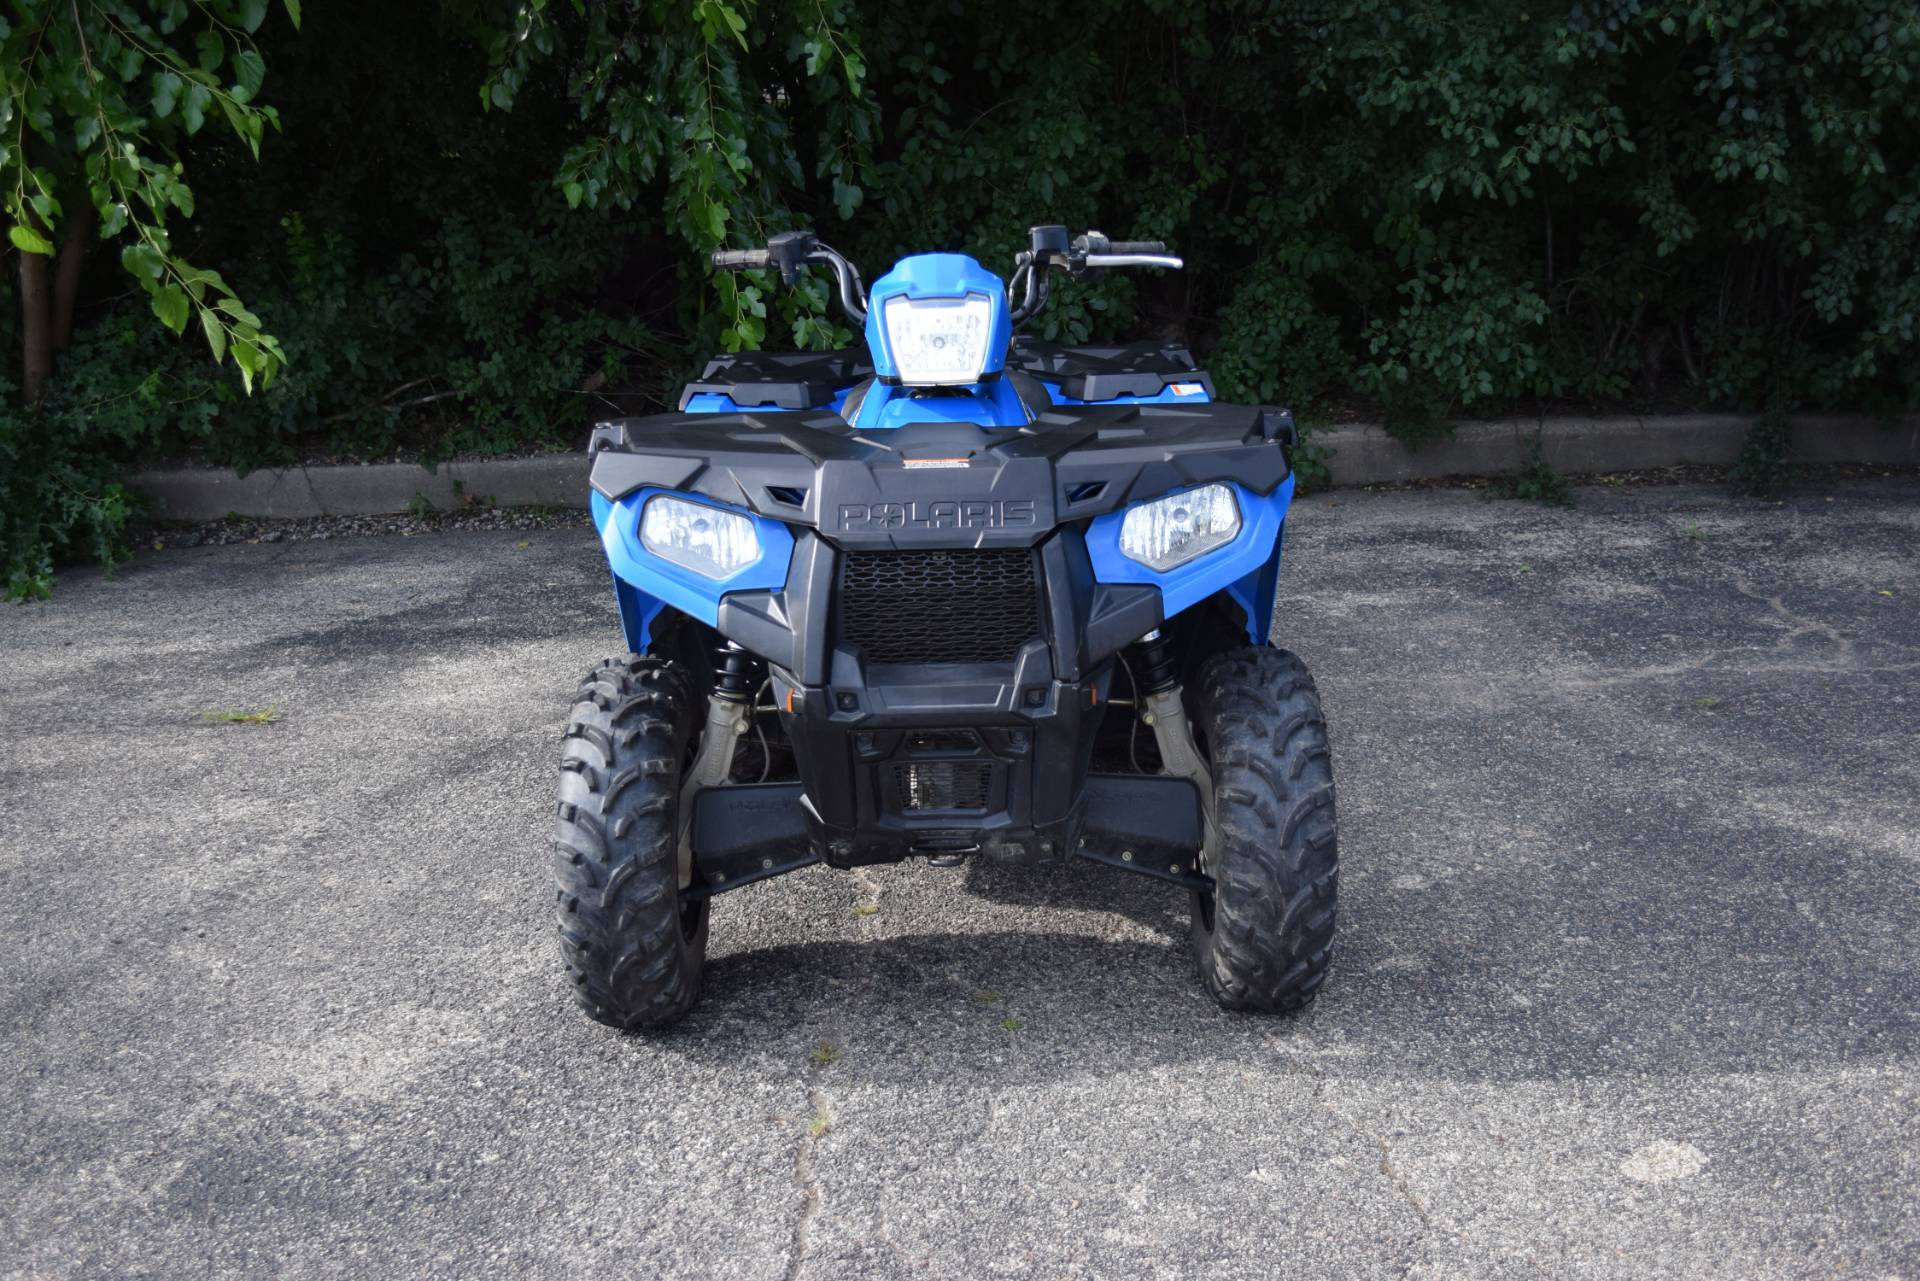 2017 Polaris Sportsman 450 H.O. in Wauconda, Illinois - Photo 10